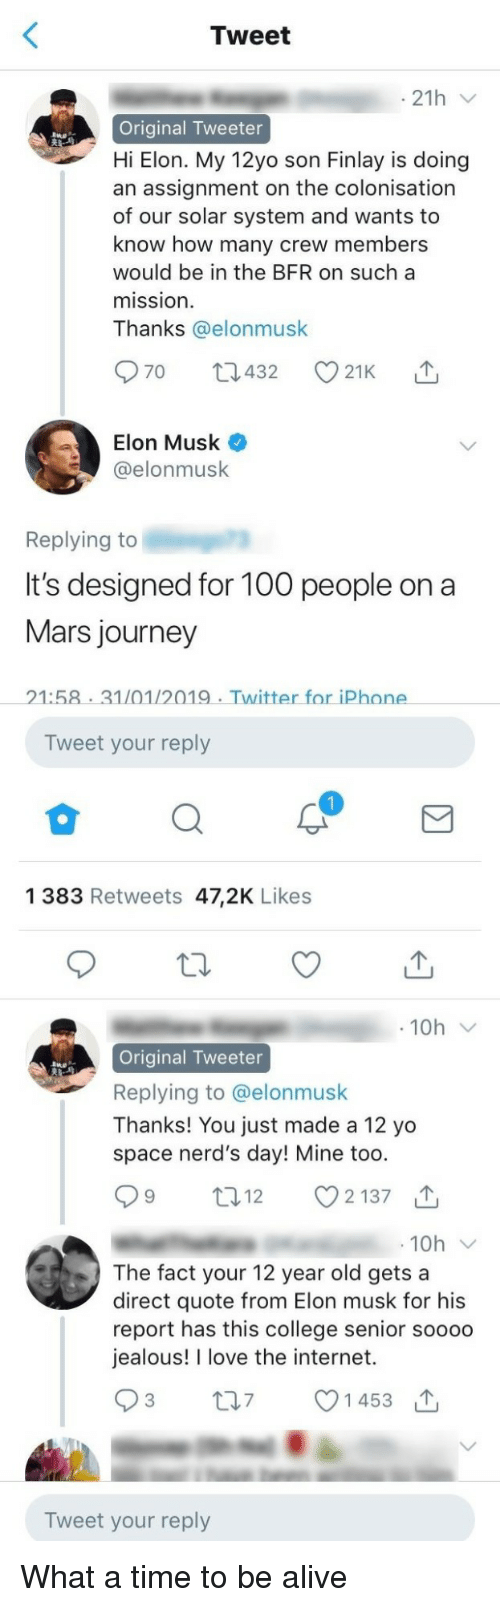 Thanks You: Tweet  21h  Original Tweeter  Hi Elon. My 12yo son Finlay is doing  an assignment on the colonisation  of our solar system and wants to  know how many crew members  would be in the BFR on sucha  mission  Thanks @elonmusk  Elon Musk  @elonmusk  Replying to  It's designed for 10o people ona  Mars journey  21:58 31/01/2019 Twitter for iPhone  Tweet your reply  1 383 Retweets 47,2K Likes  Original Tweeter  Replying to @elonmusk  Thanks! You just made a 12 yo  space nerd's day! Mine too  12  2137  10h  The fact your 12 year old gets a  direct quote from Elon musk for his  report has this college senior soooo  jealous! I love the internet.  t07 1453  Tweet your reply What a time to be alive